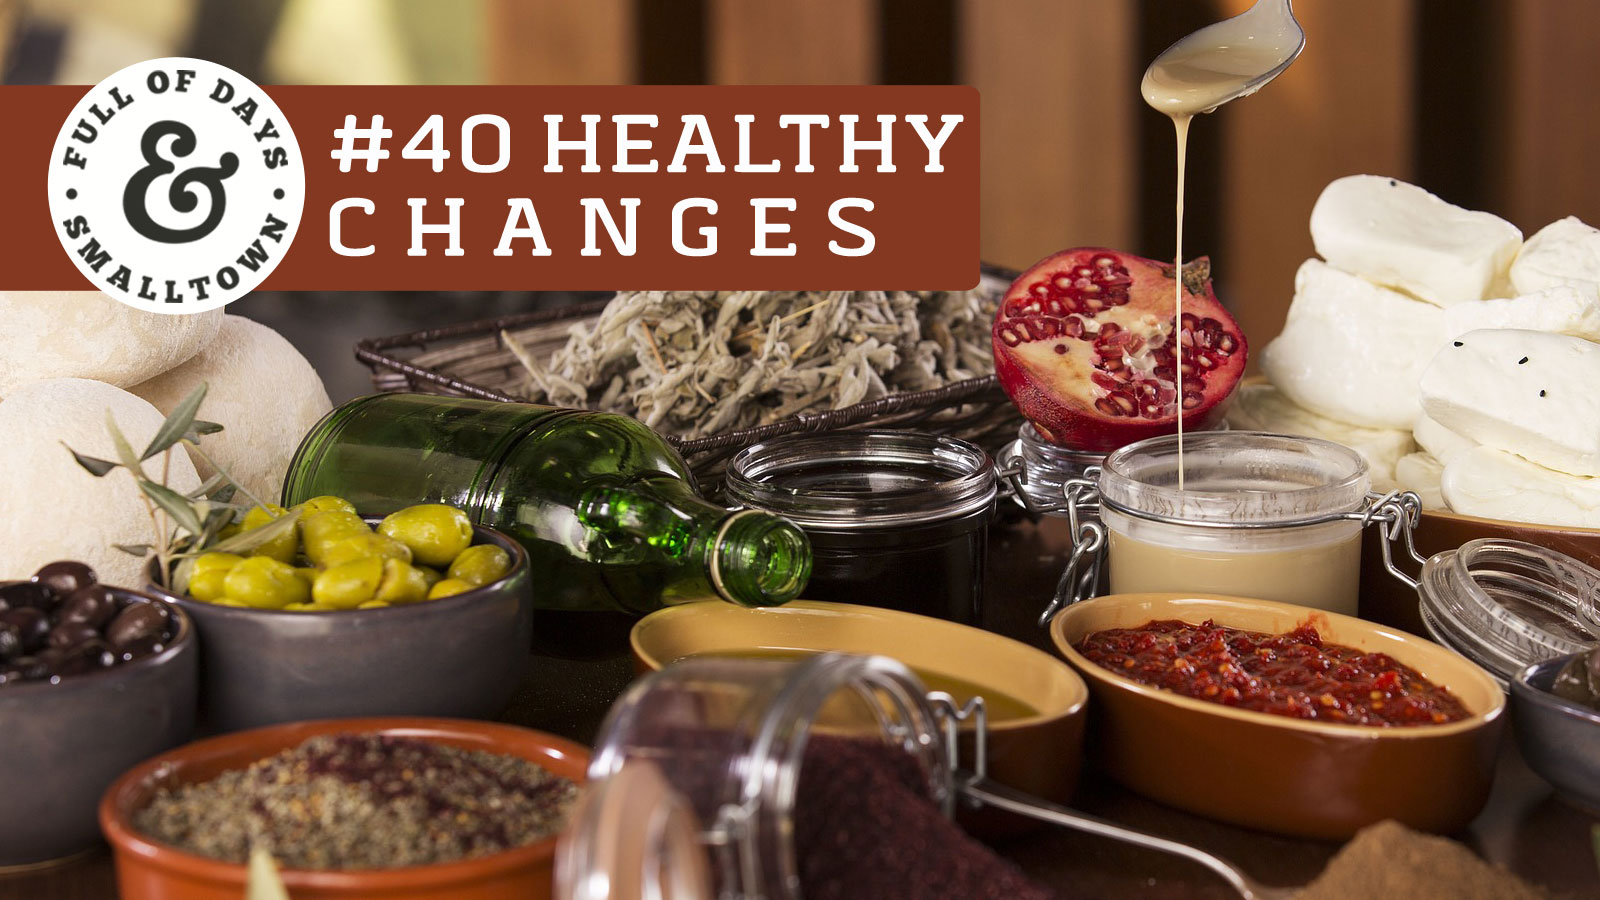 healthy-changes-40_full-of-days_healing-diets_1600-x-900